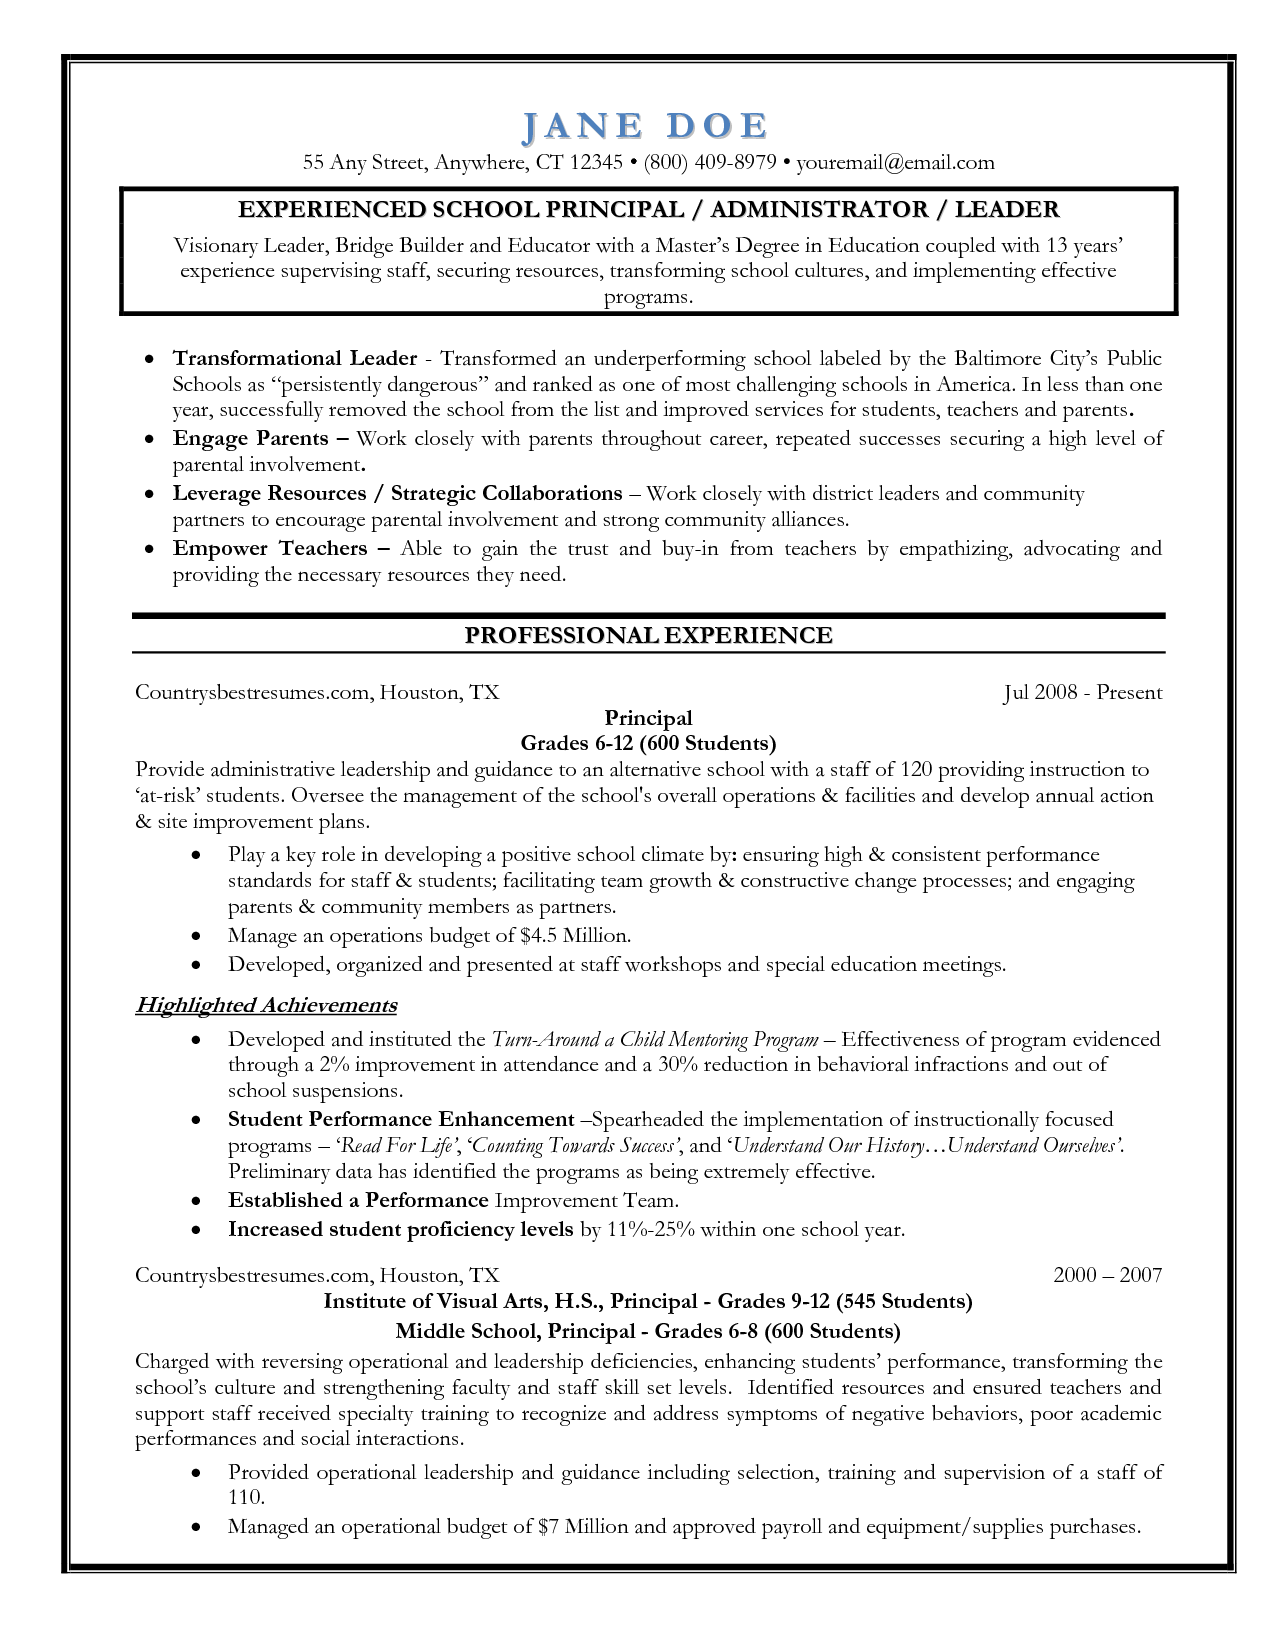 Resume And Vice Principal Sample School Principal Resumes Http Www Docstoc Com Docs 46871644 Human Resources Resume Teaching Resume Resume Examples